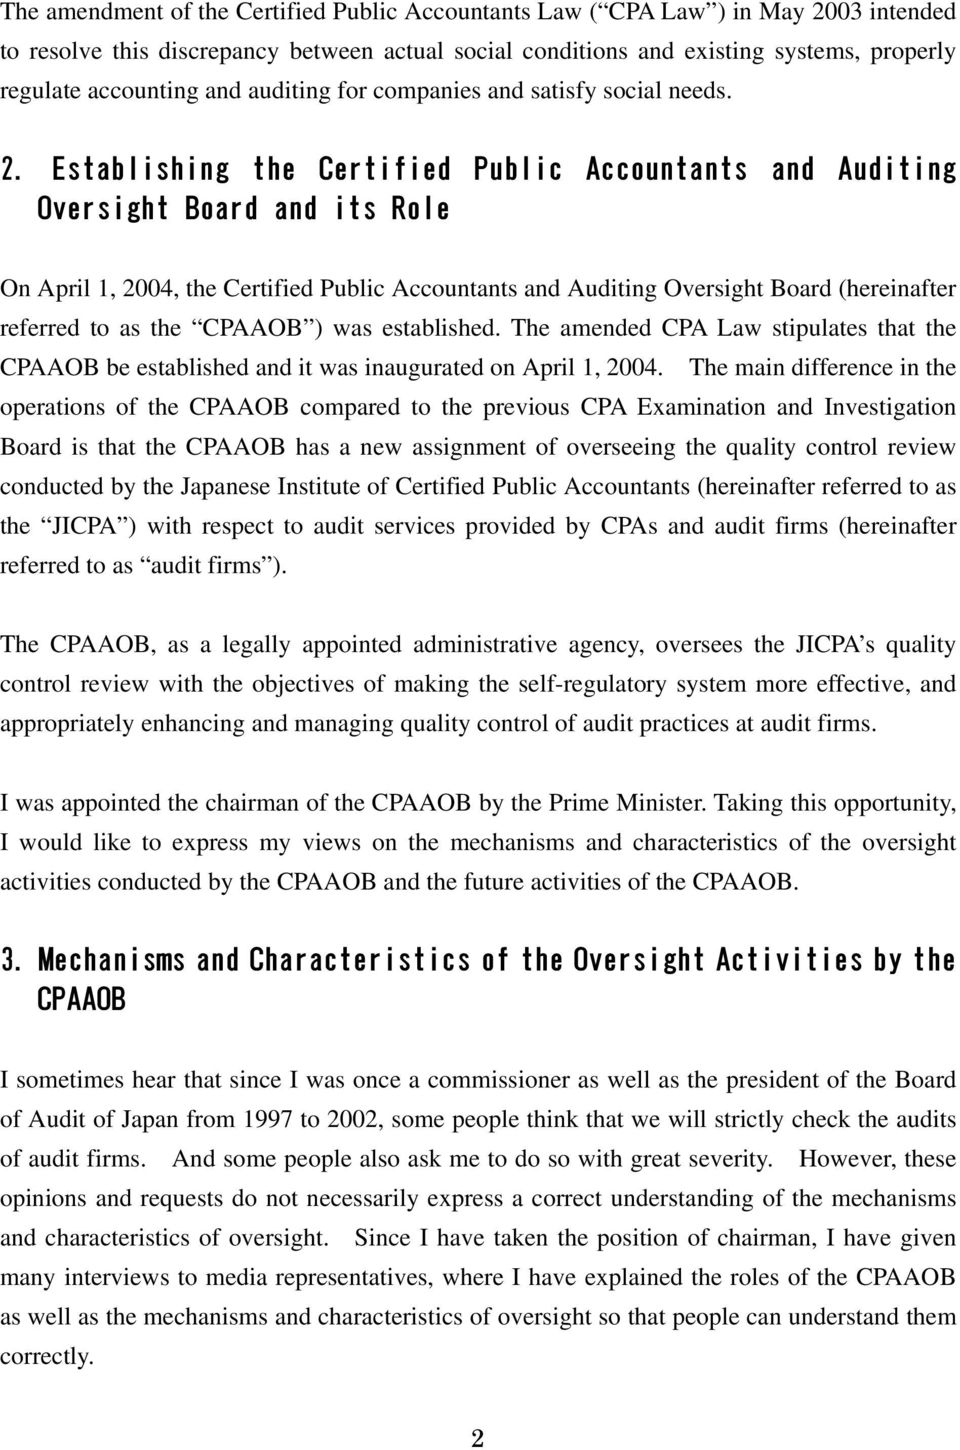 Establishing the Certified Public Accountants and Auditing Oversight Board and its Role On April 1, 2004, the Certified Public Accountants and Auditing Oversight Board (hereinafter referred to as the